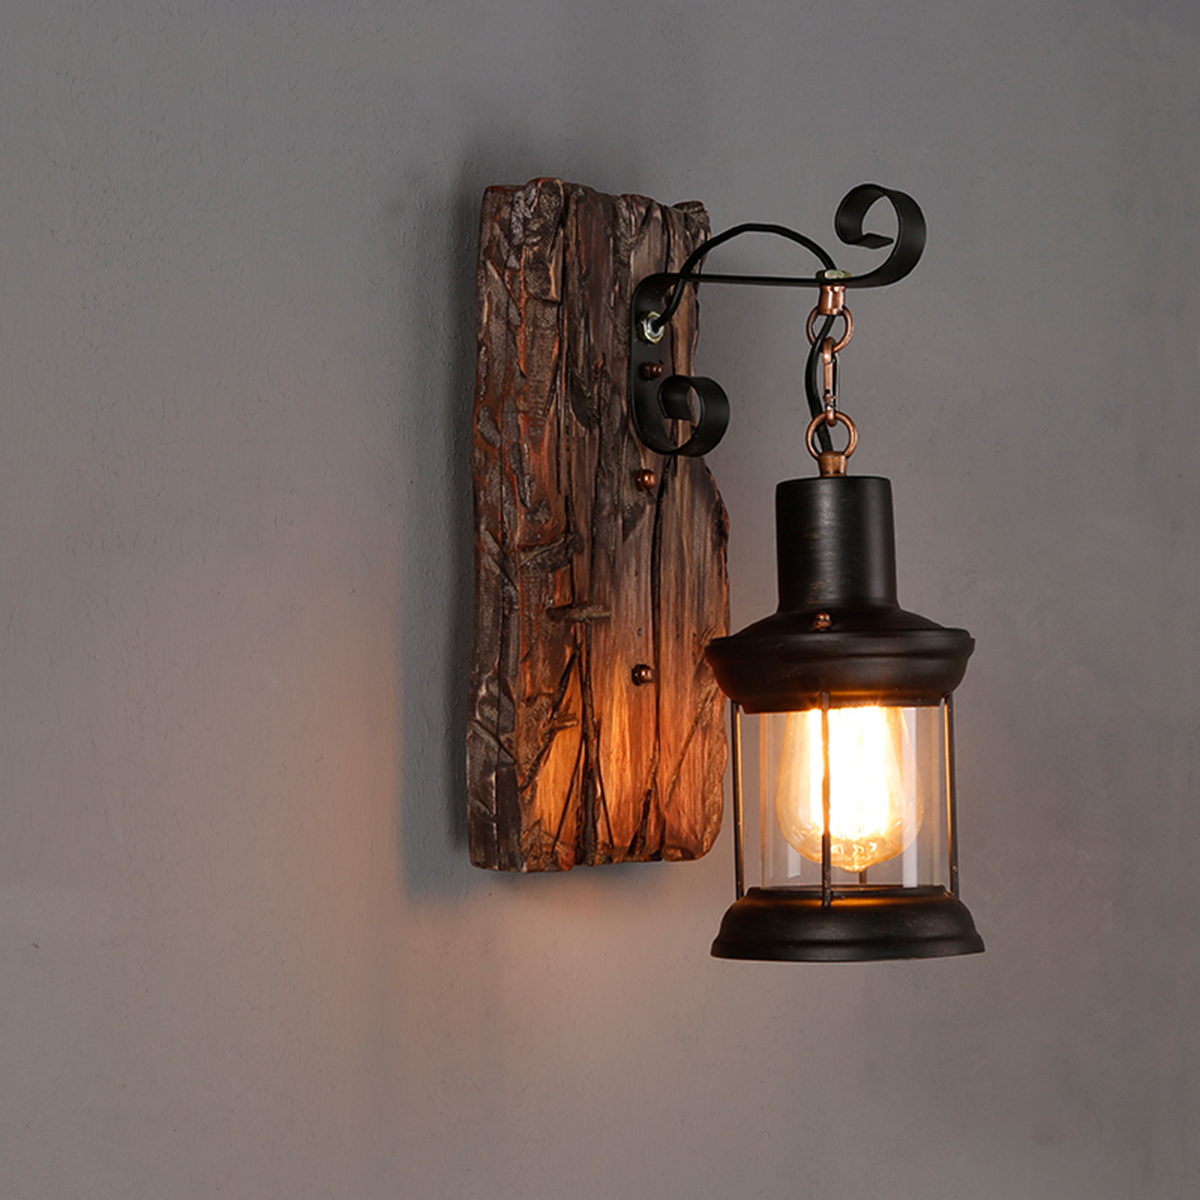 E27 Vintage Industrial Metal Sconce Wall Lamp Fixture Light Home Decor